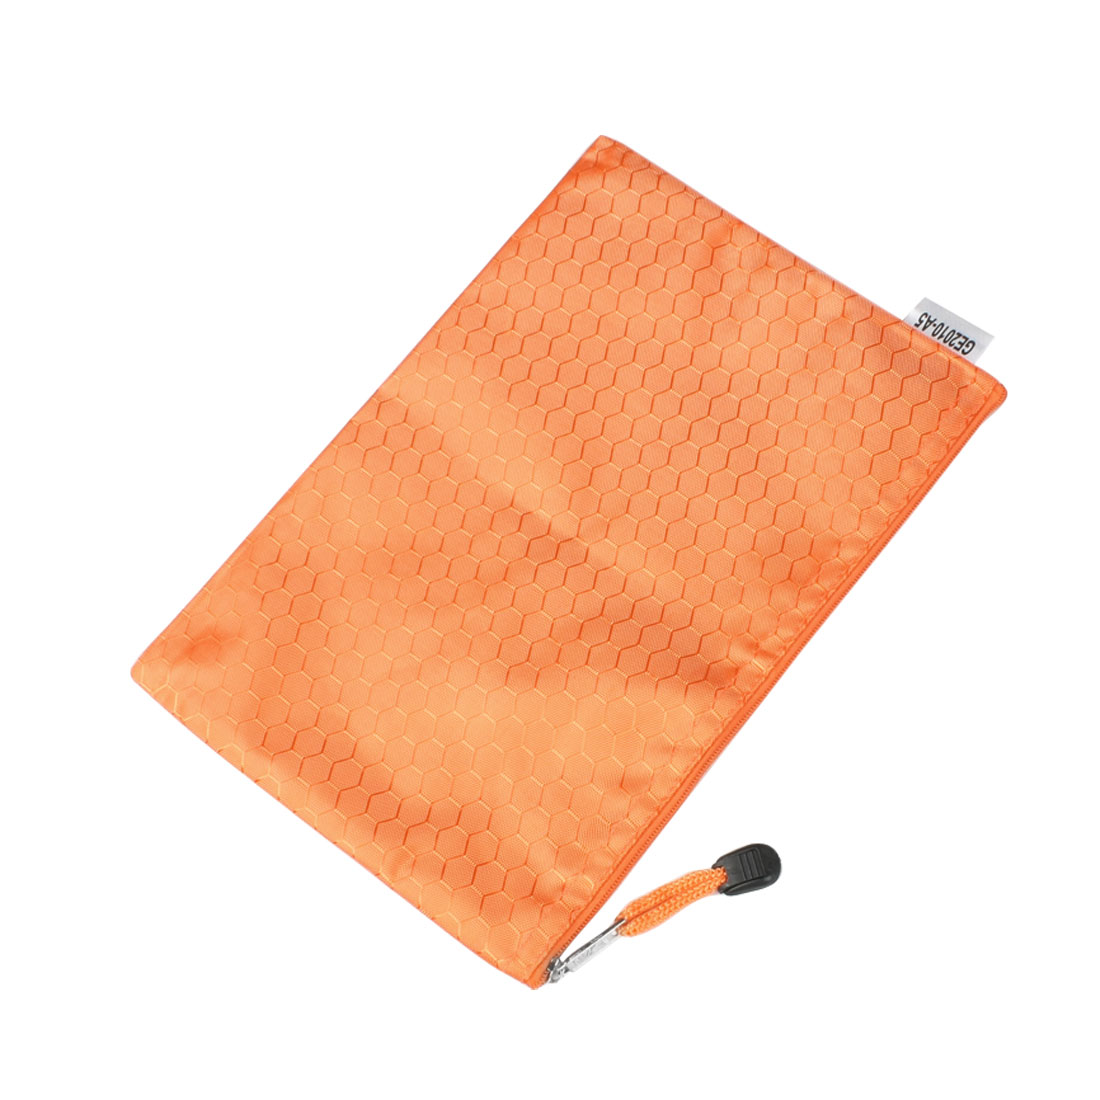 Portable Hex Pattern Water Resistant A5 Paper File Folder Pouch Bag Orange